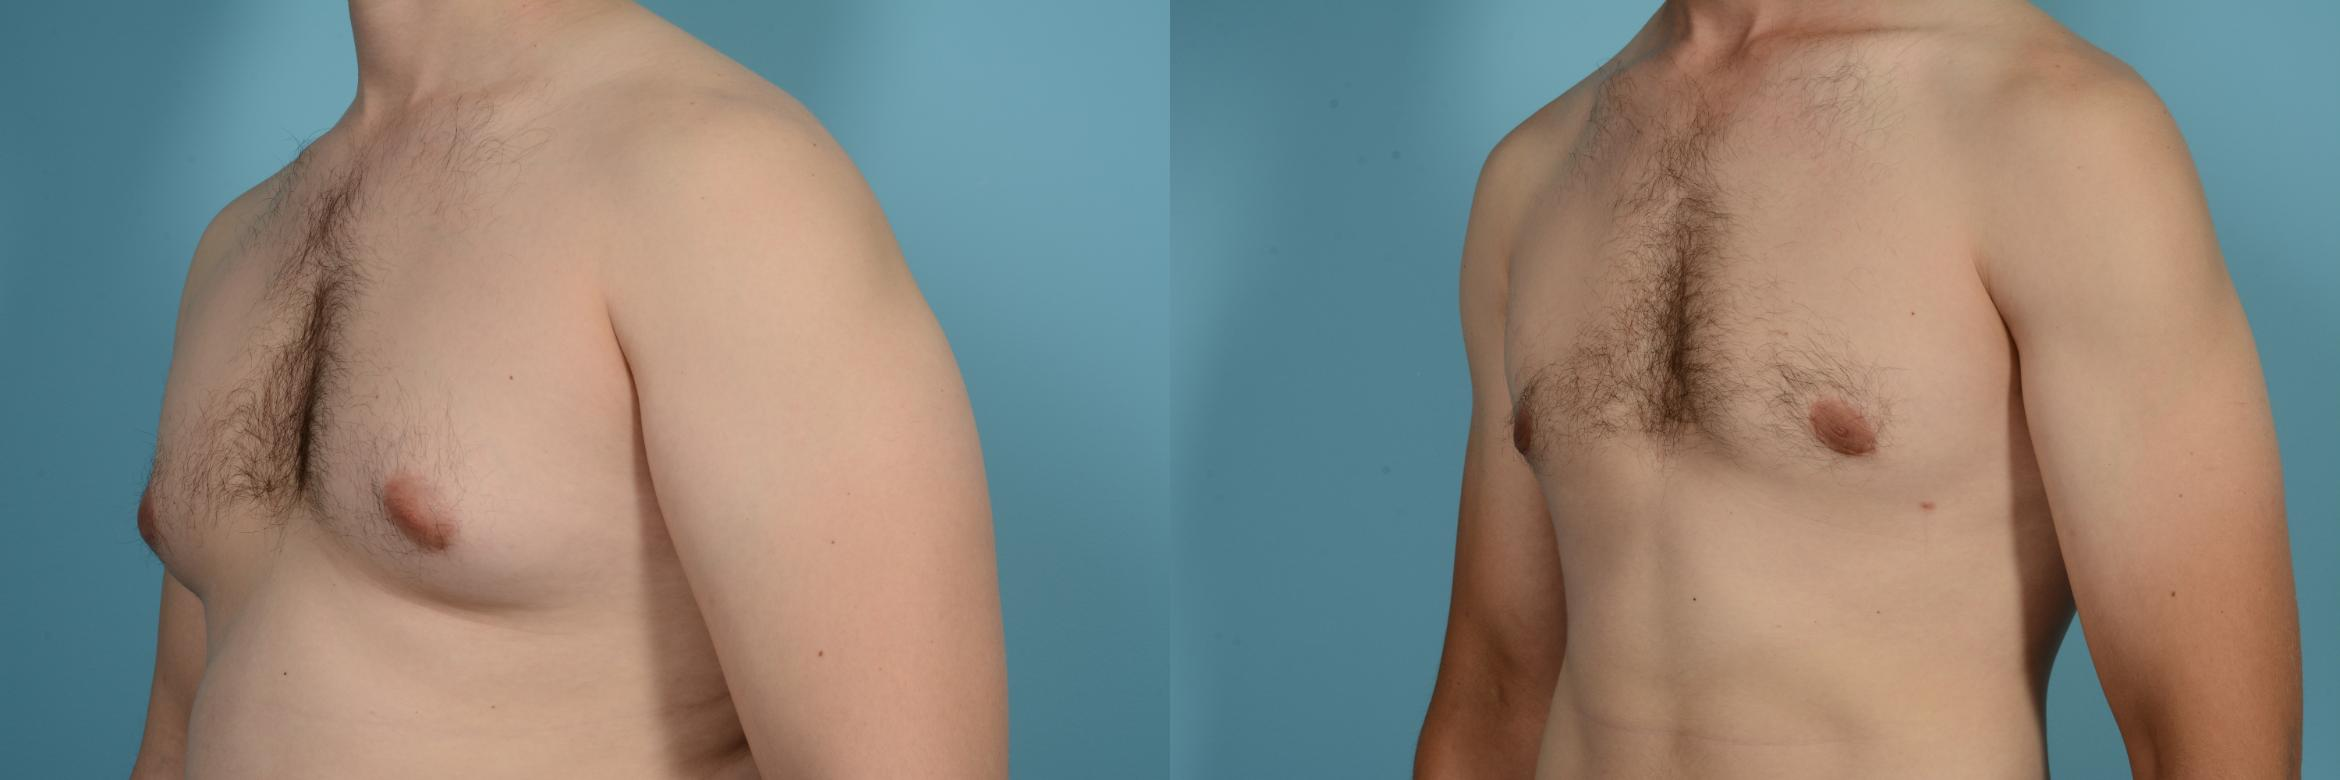 Male Breast Reduction (Gynecomastia) Case 630 Before & After Left Oblique | Chicago, IL | TLKM Plastic Surgery